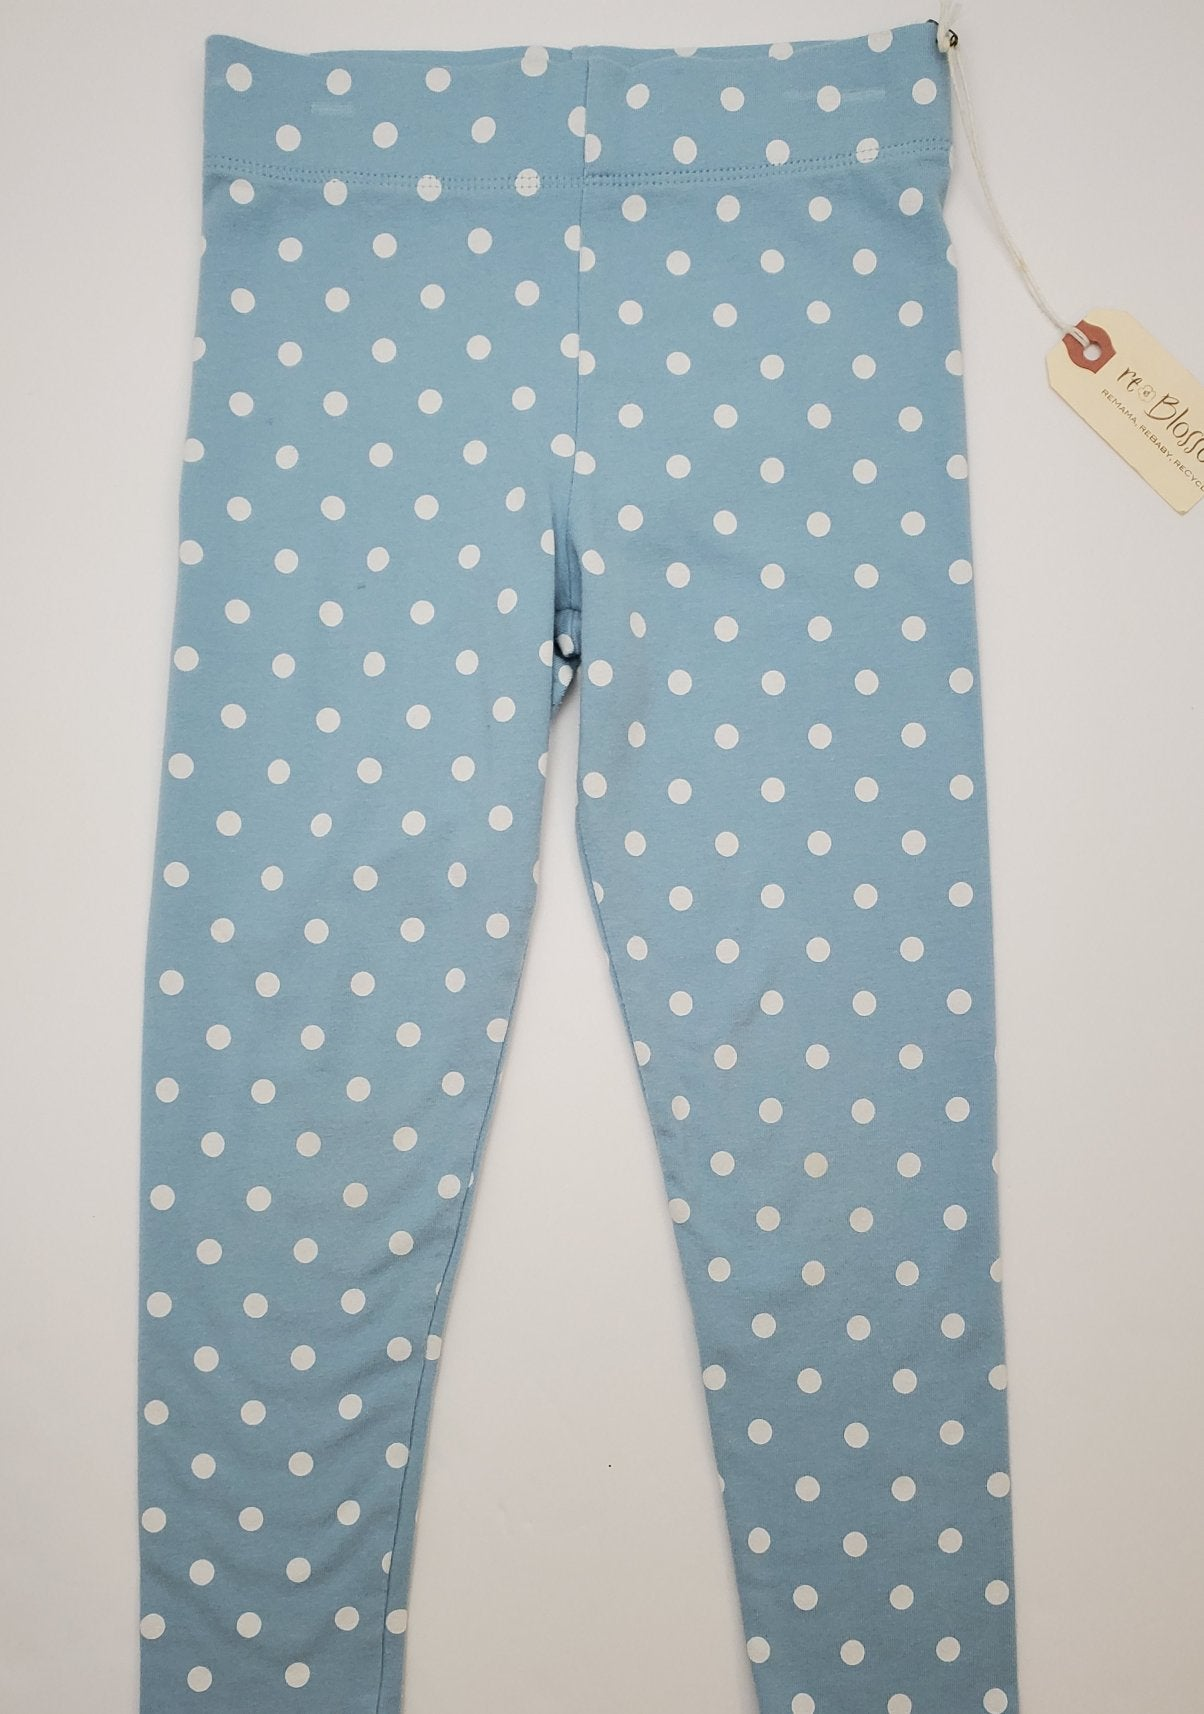 Resale 5-6 Y Mini Boden Blue / White Polka Dot Leggings